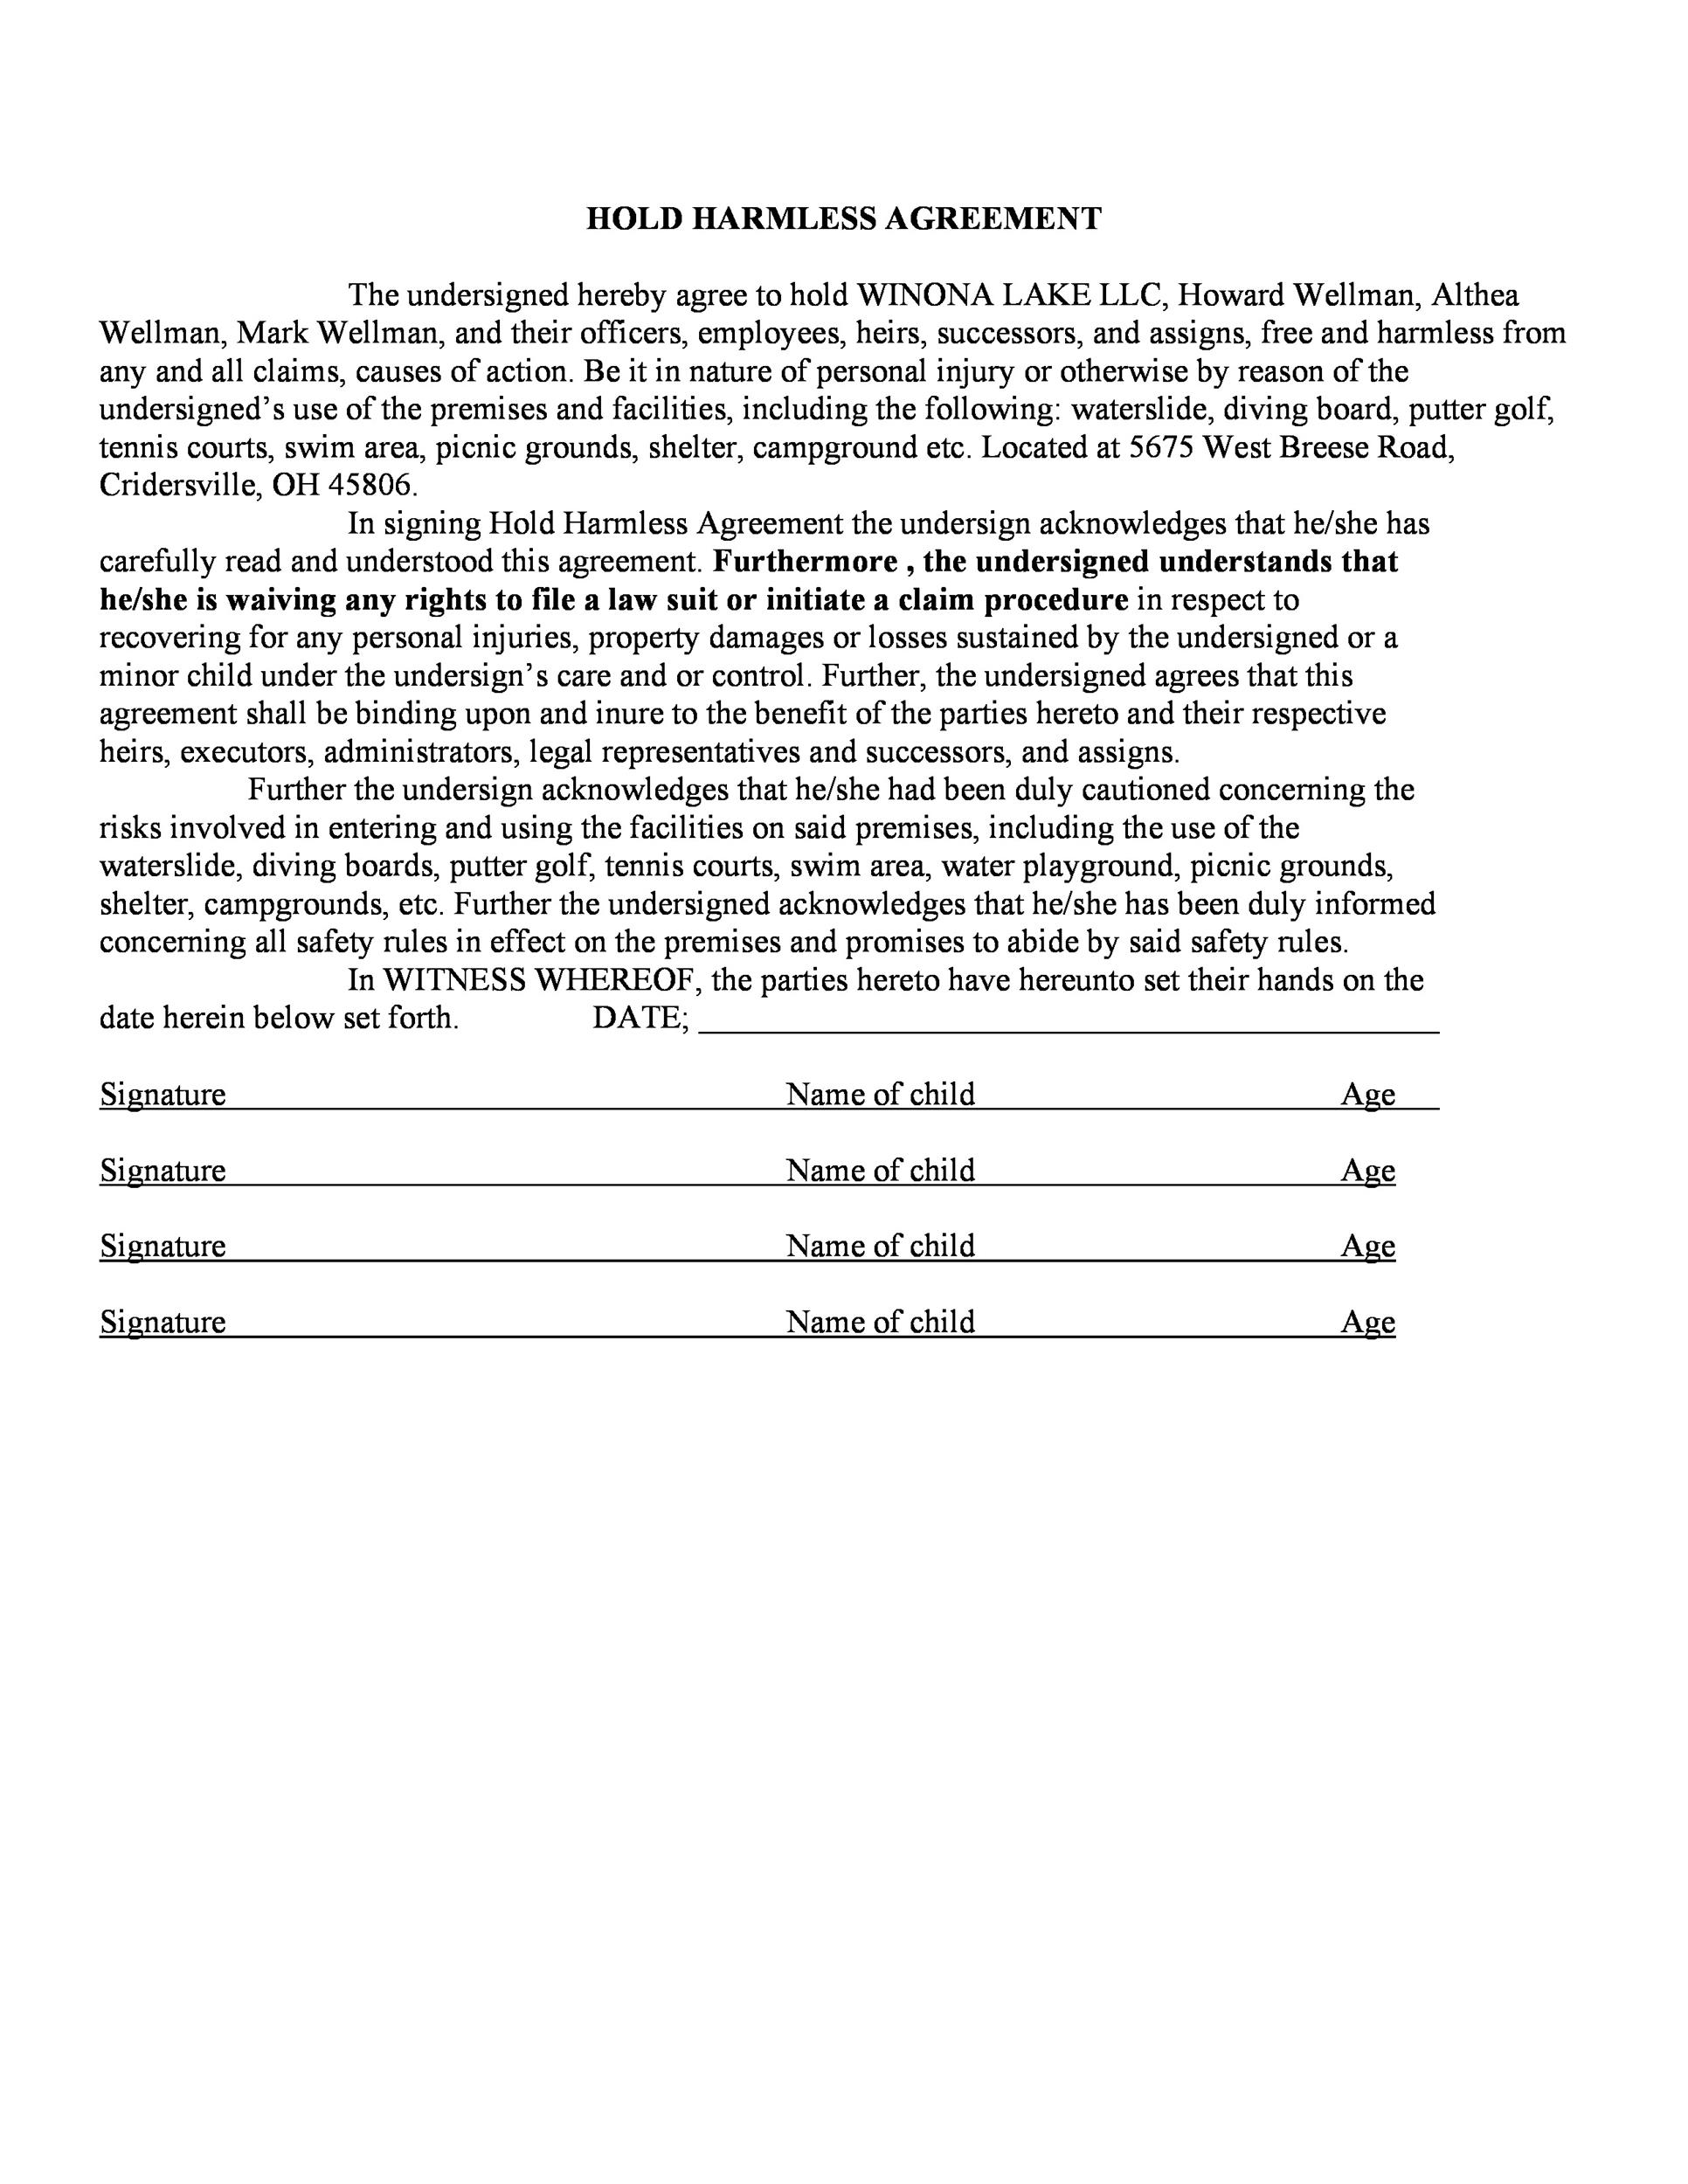 Simple Hold Harmless Agreement Free Liability Waiver Form